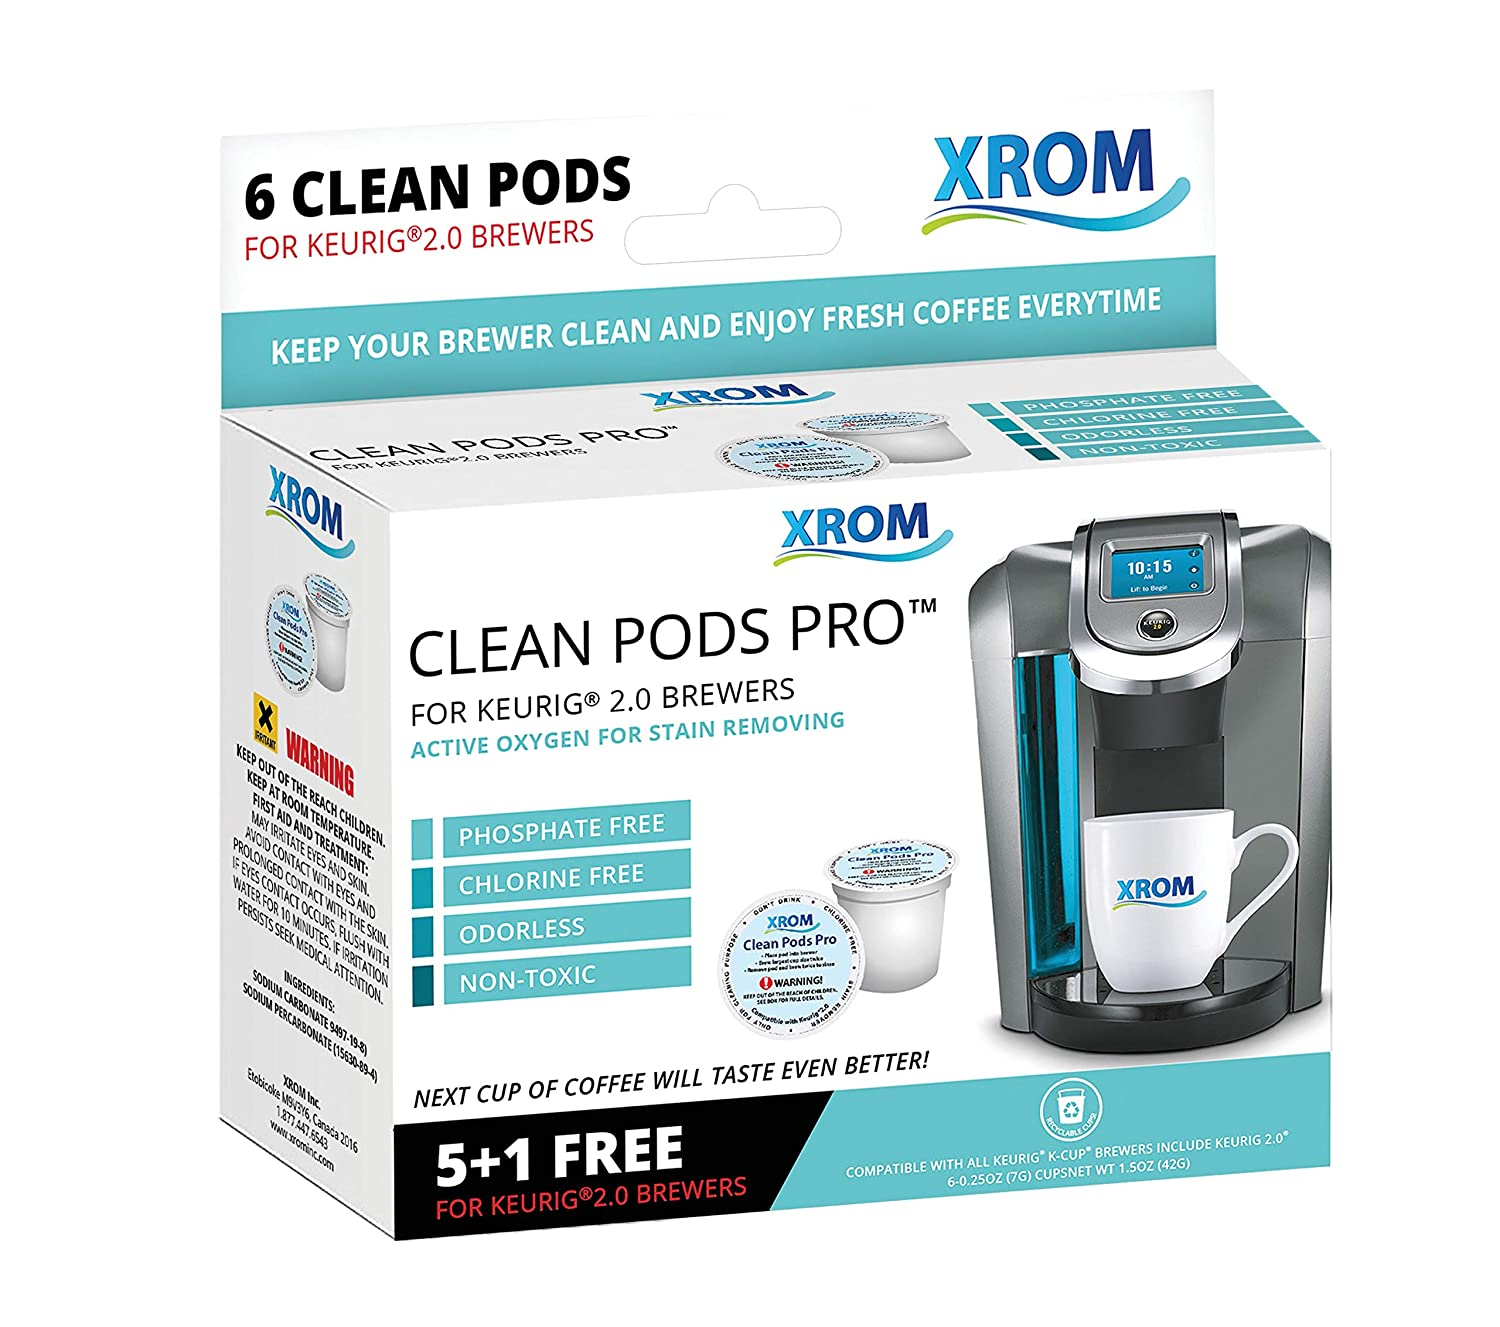 XROM Professional Cleaning Pods Compatible with All Keurig K-Cup 2.0 Brewers, Coffee Stain Removing, Non Toxic, Biodegradable, 6 per Pack.